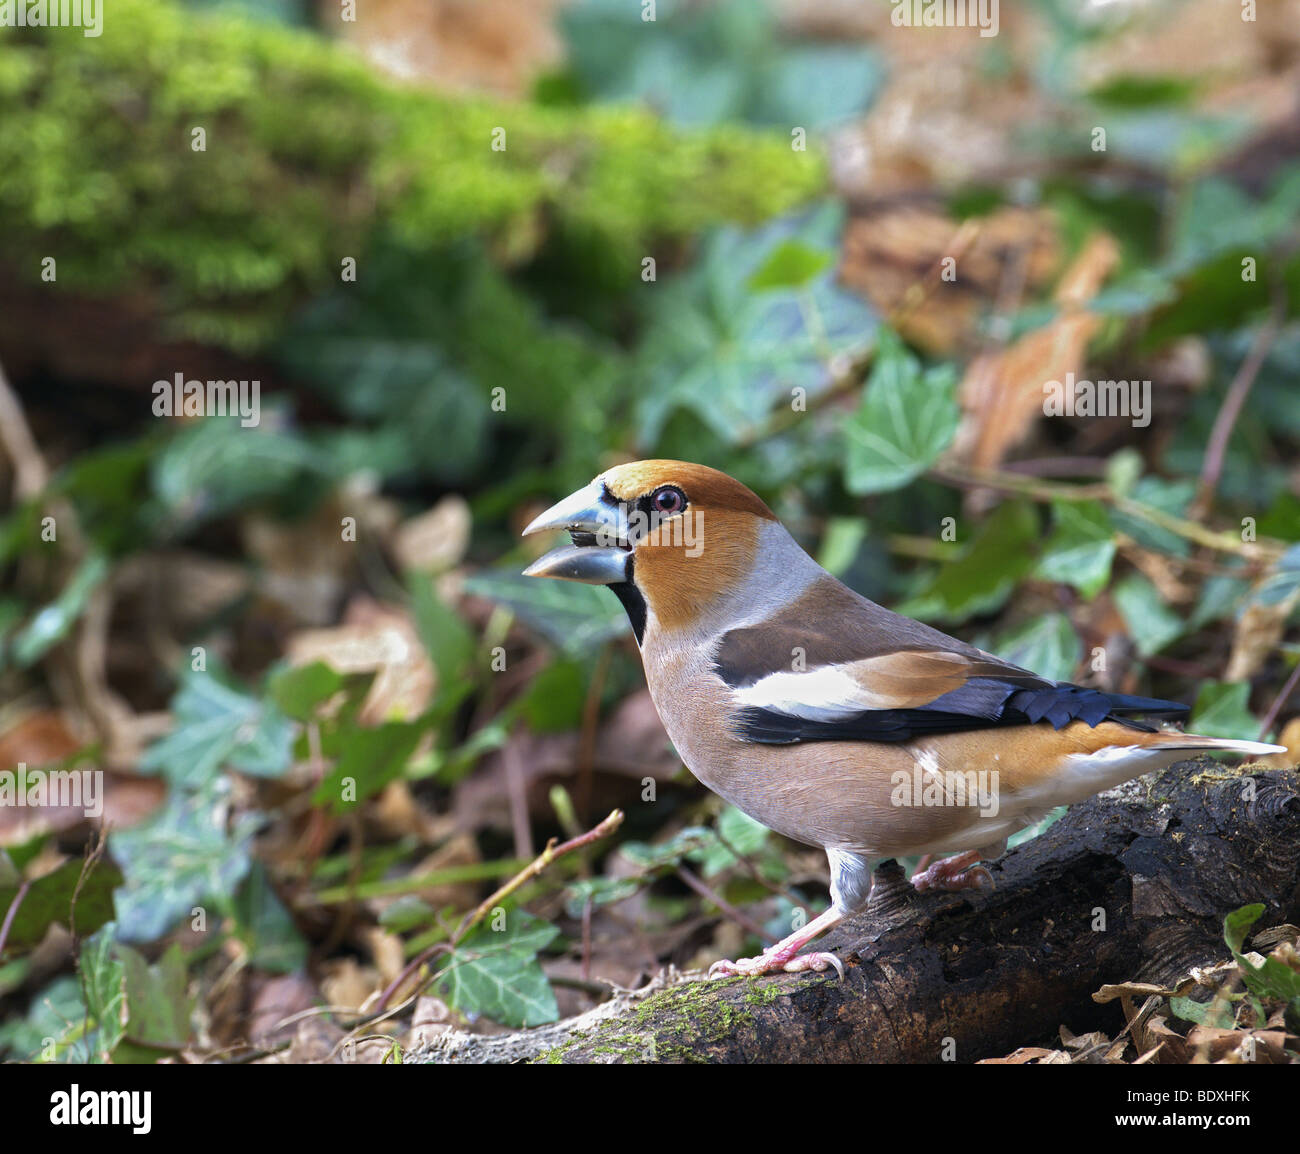 FEMALE HAWFINCH COCCOTHRAUSTES  PERCHED ON A BRANCH ON THE GROUNG FEEDING. WEST SUSSEX UK - Stock Image